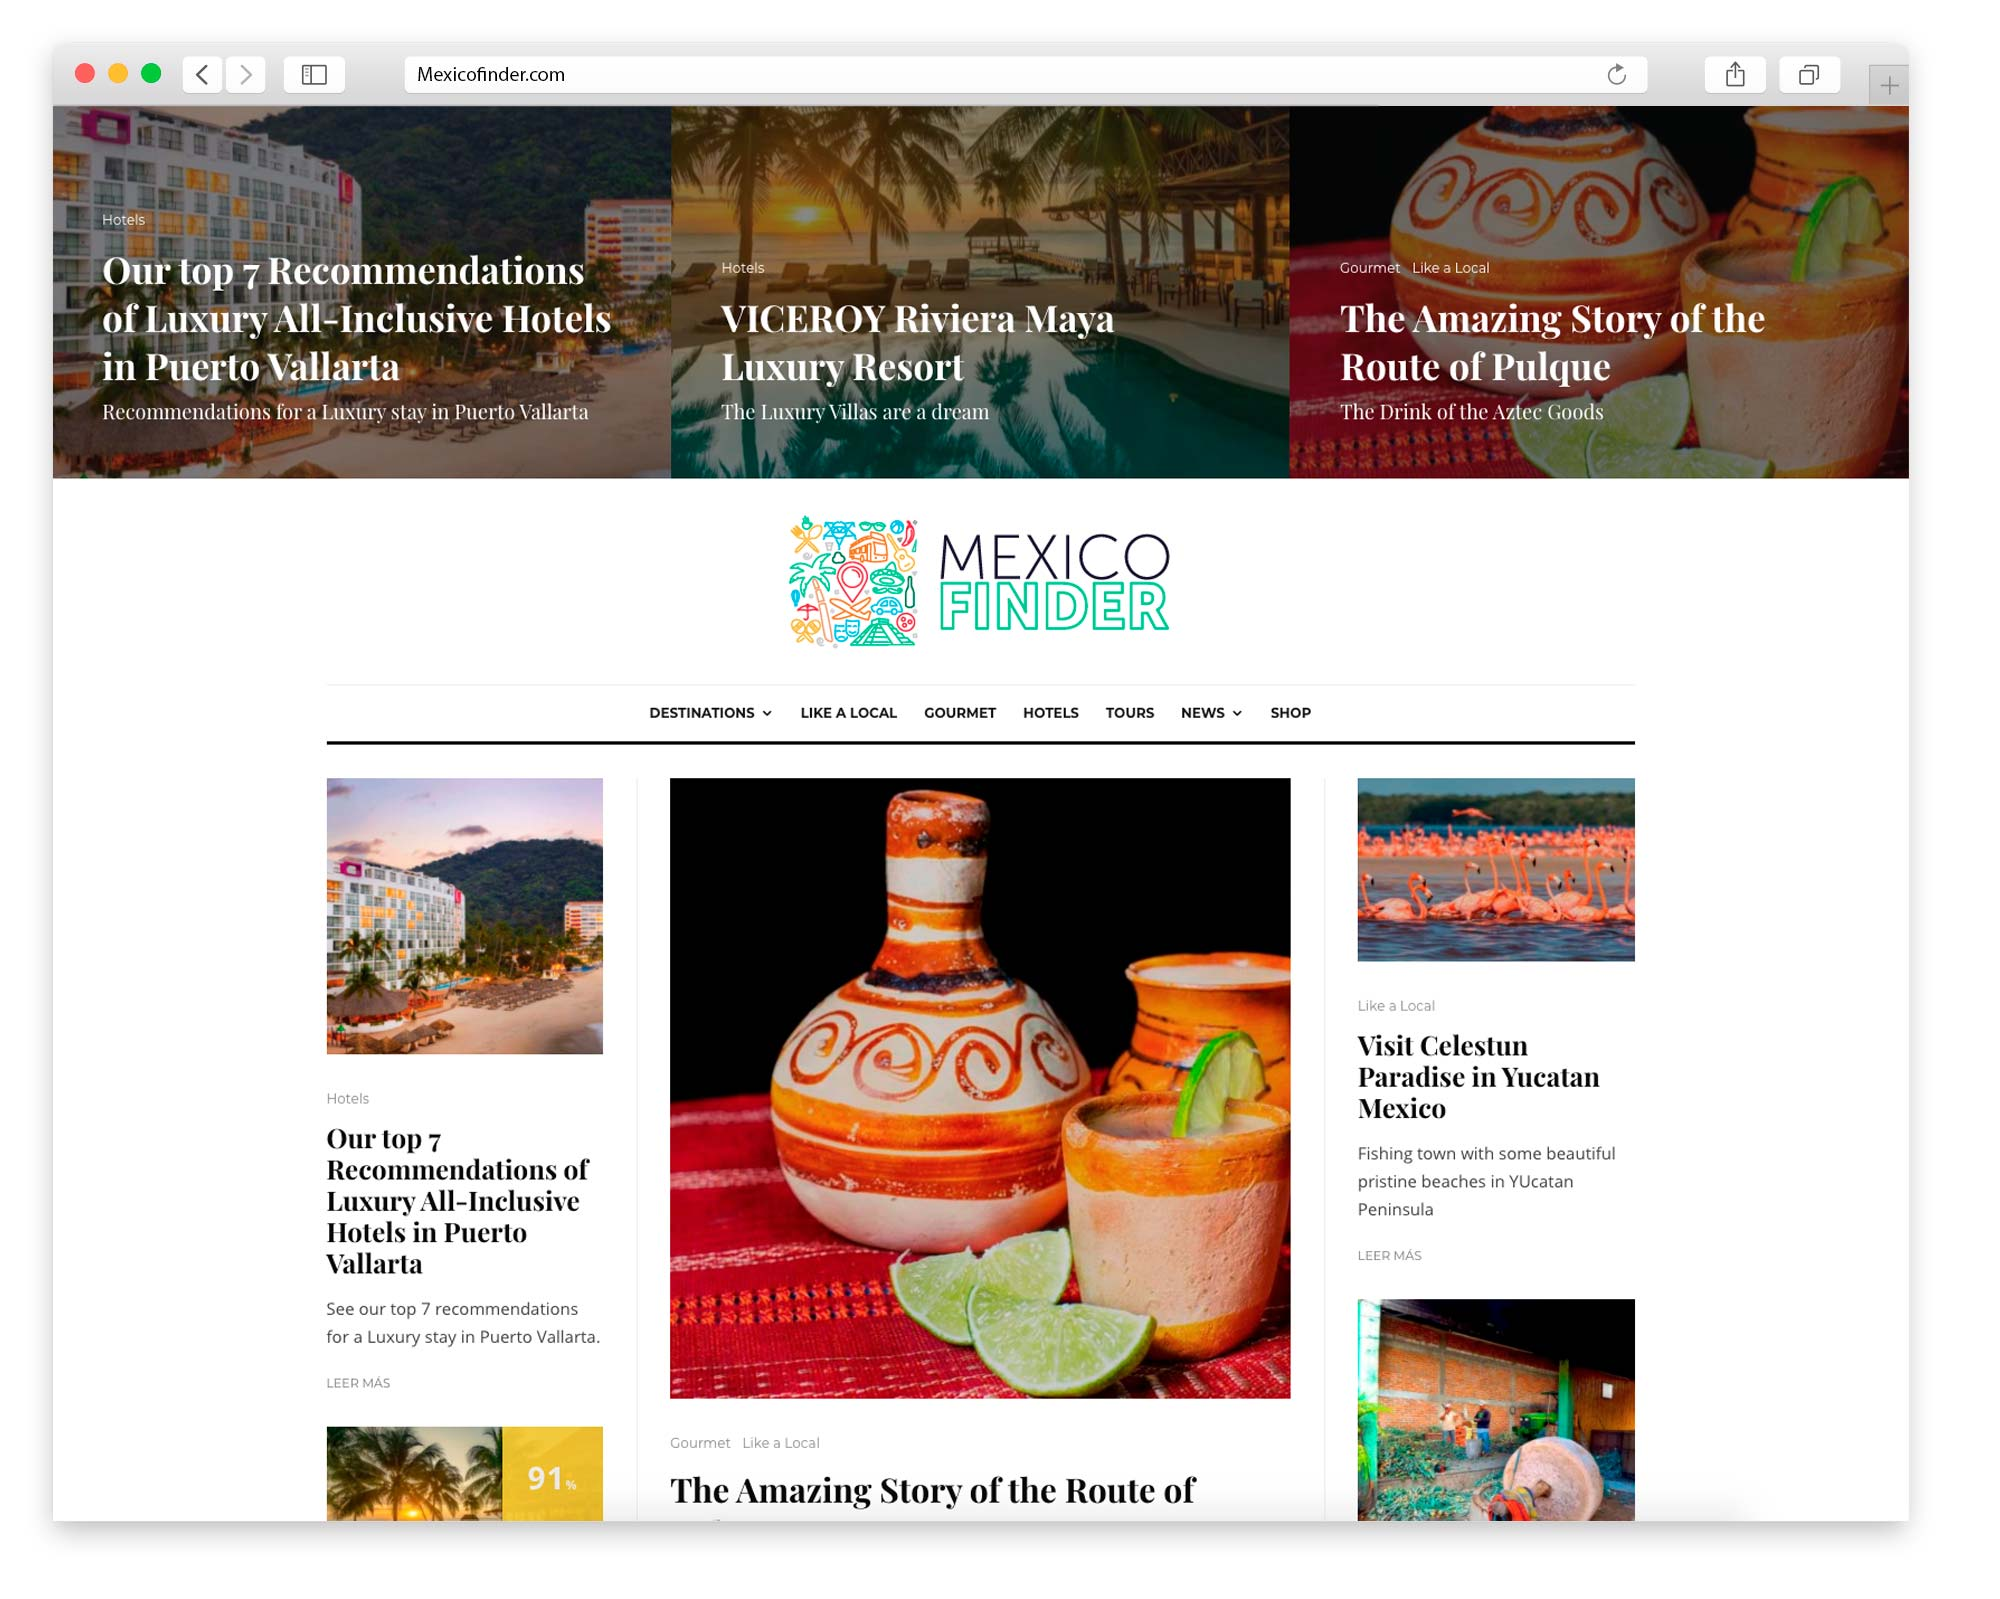 boom-agencia-marketing-digital-branding-mexicofinder-website-design